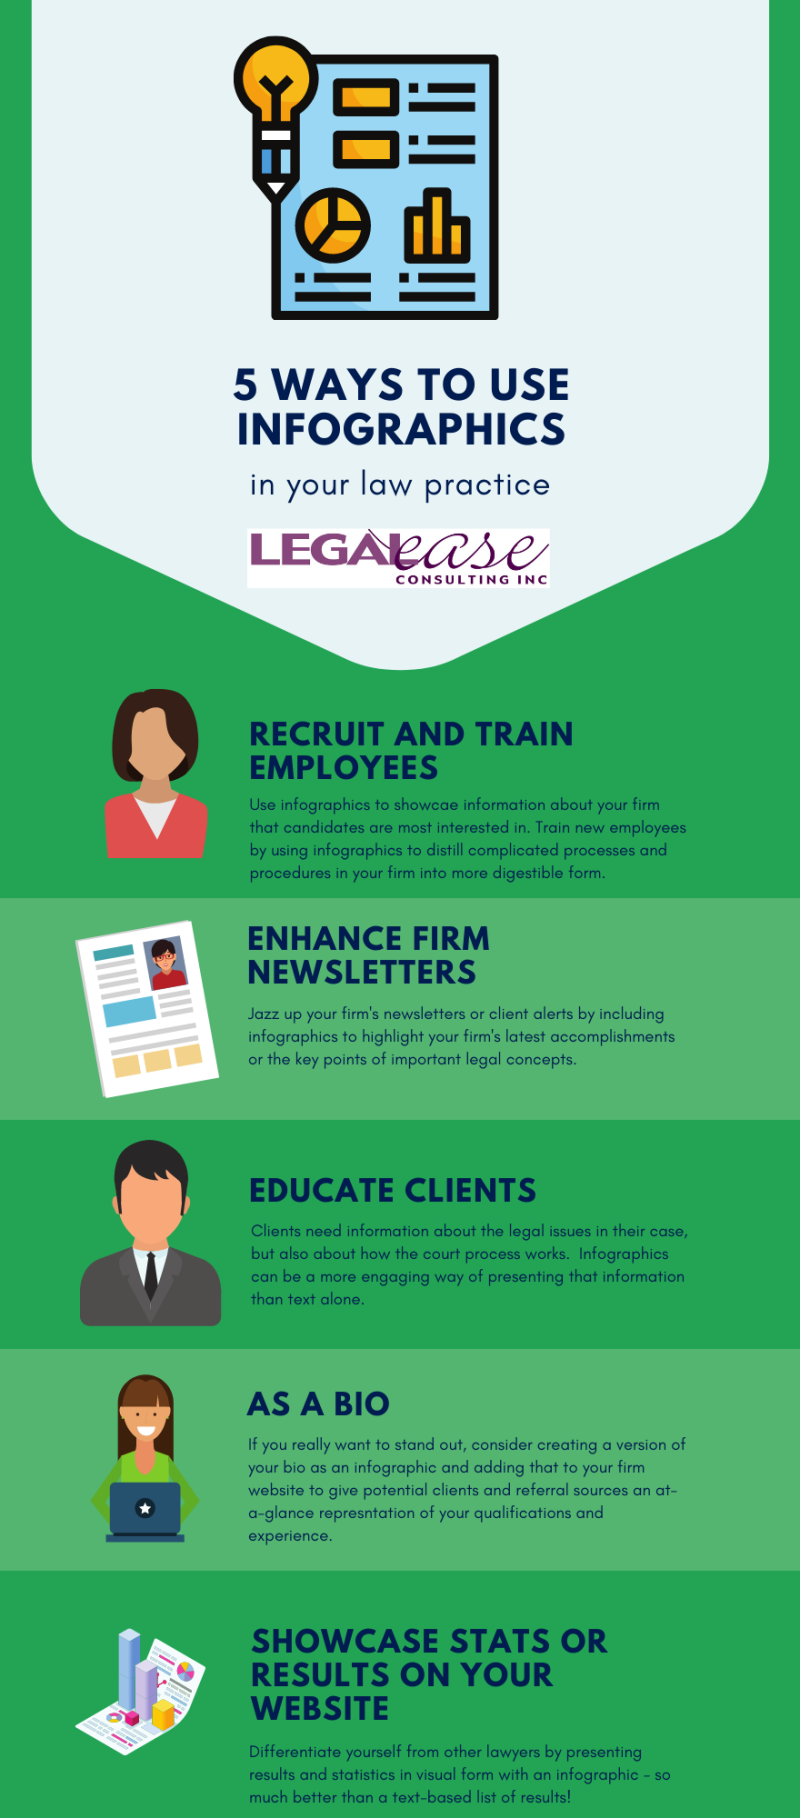 5 Ways to Use Infographics in Your Law Practice Infographic